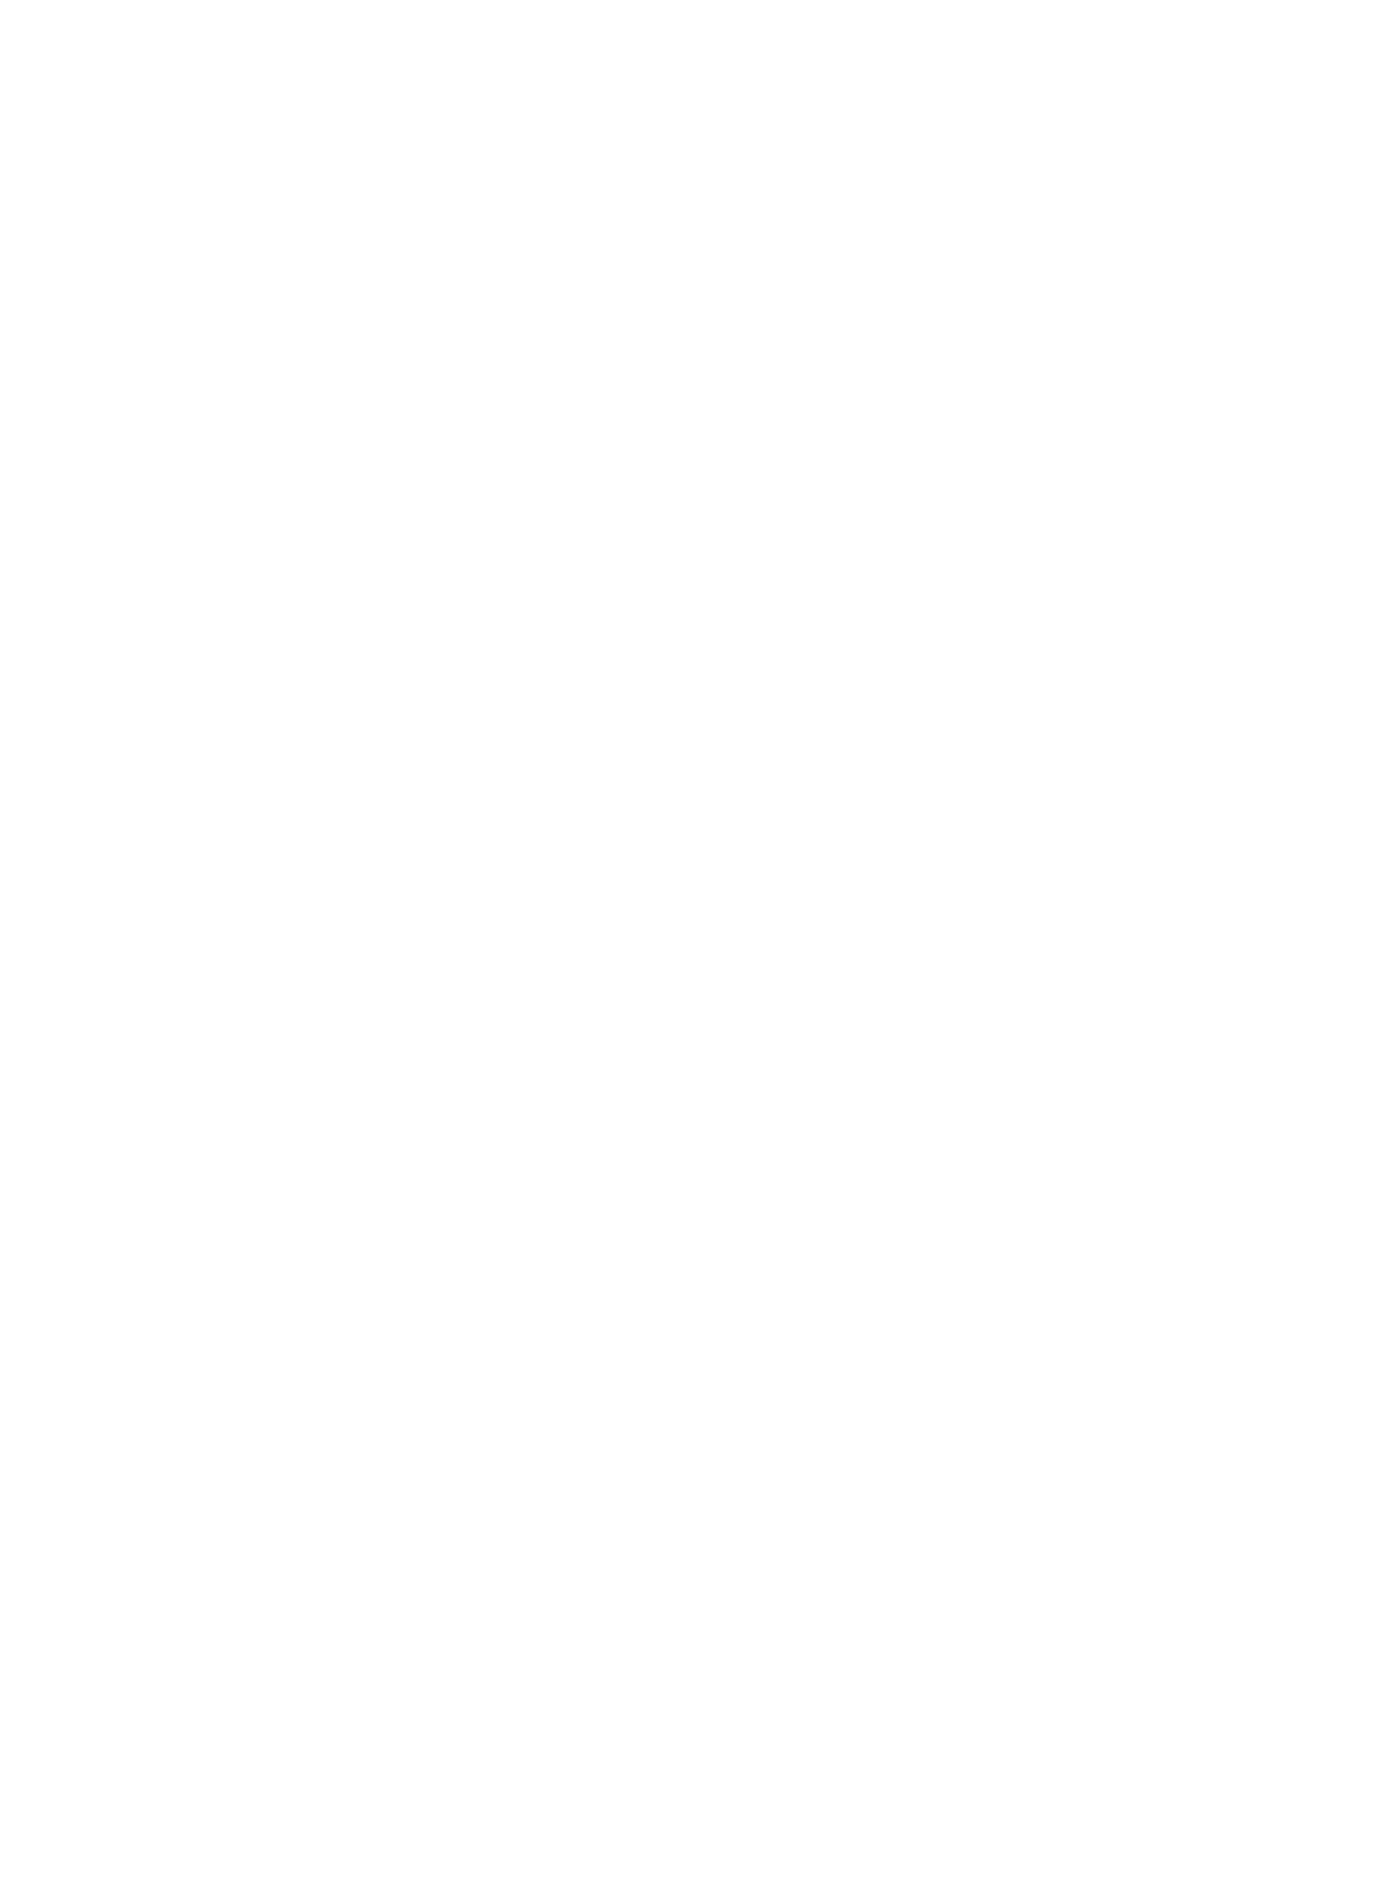 2M awarded the queens award for enterprise, international trade 2019